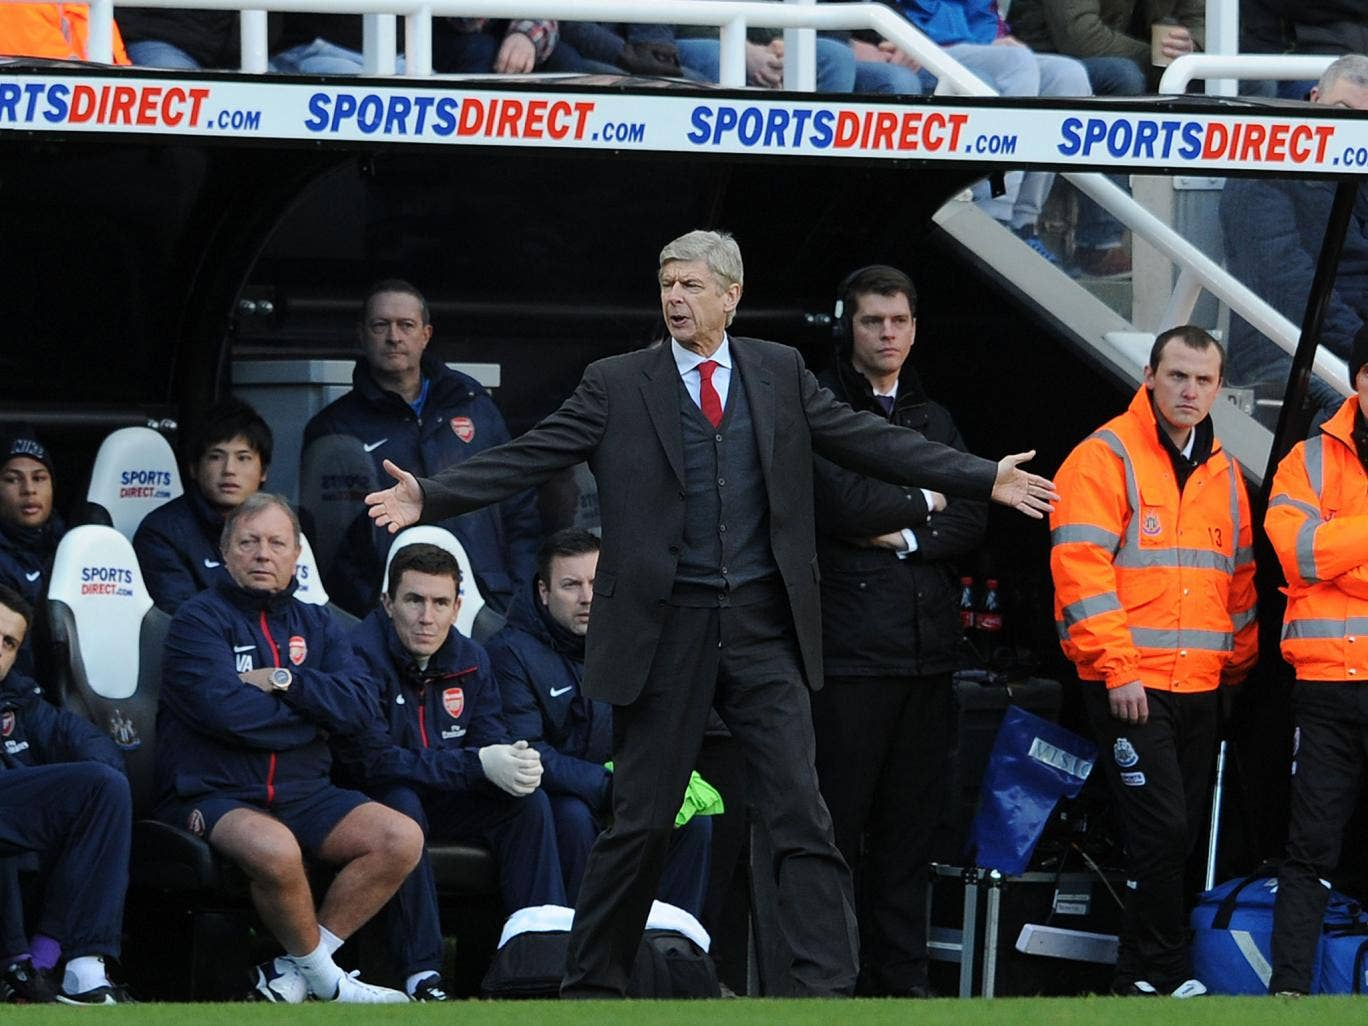 Arsene Wenger gestures on the sidelines during Arsenal's win over Newcastle